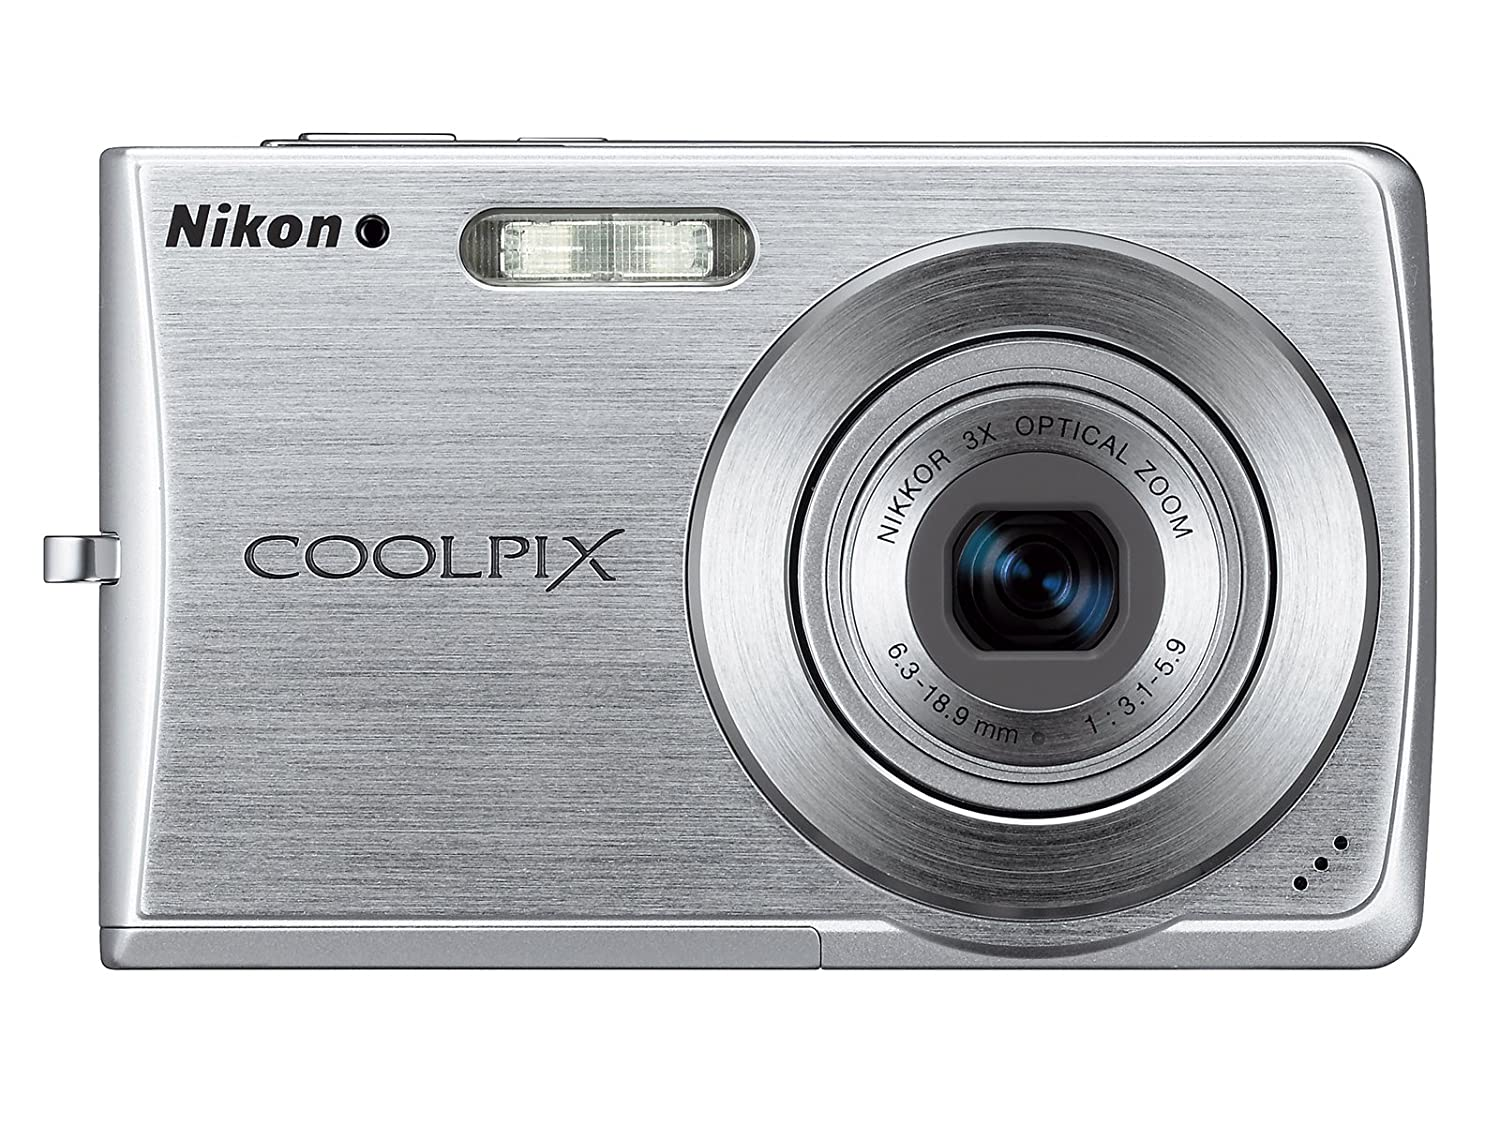 NIKON COOLPIX S200 WINDOWS DRIVER DOWNLOAD